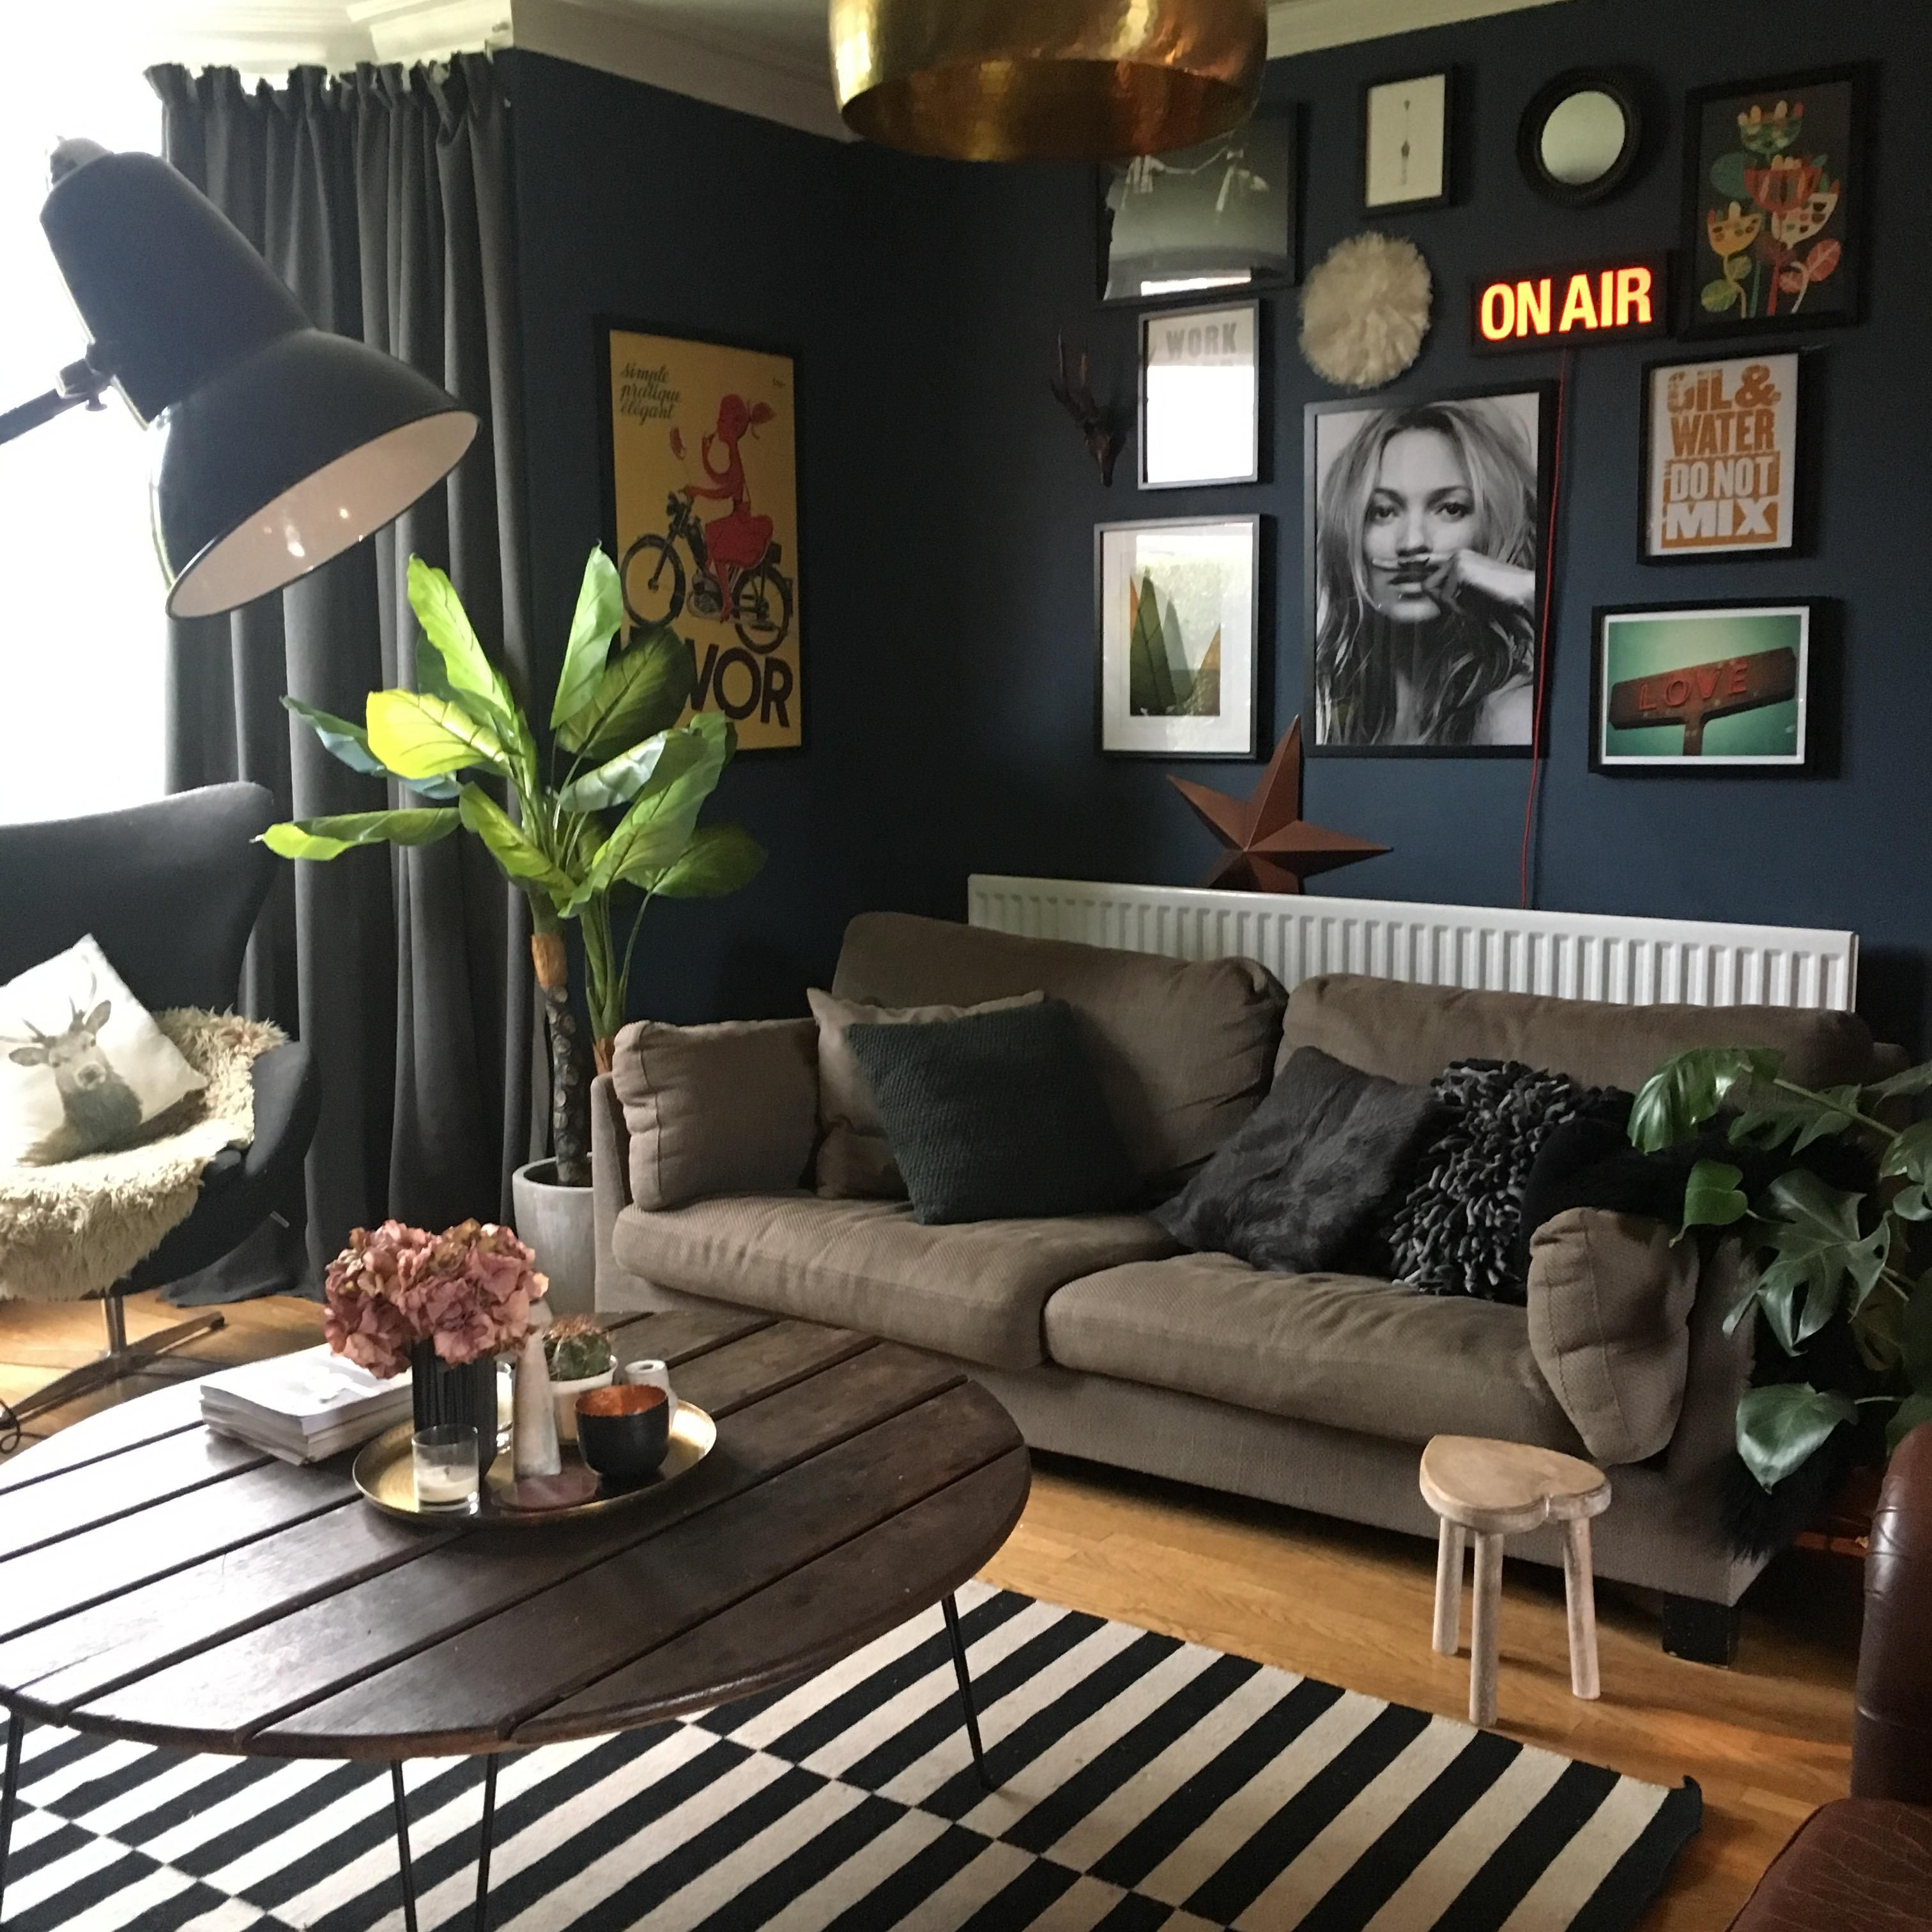 Decorating ideas for living room walls dare to go dark  dark walls farrow ball and living rooms